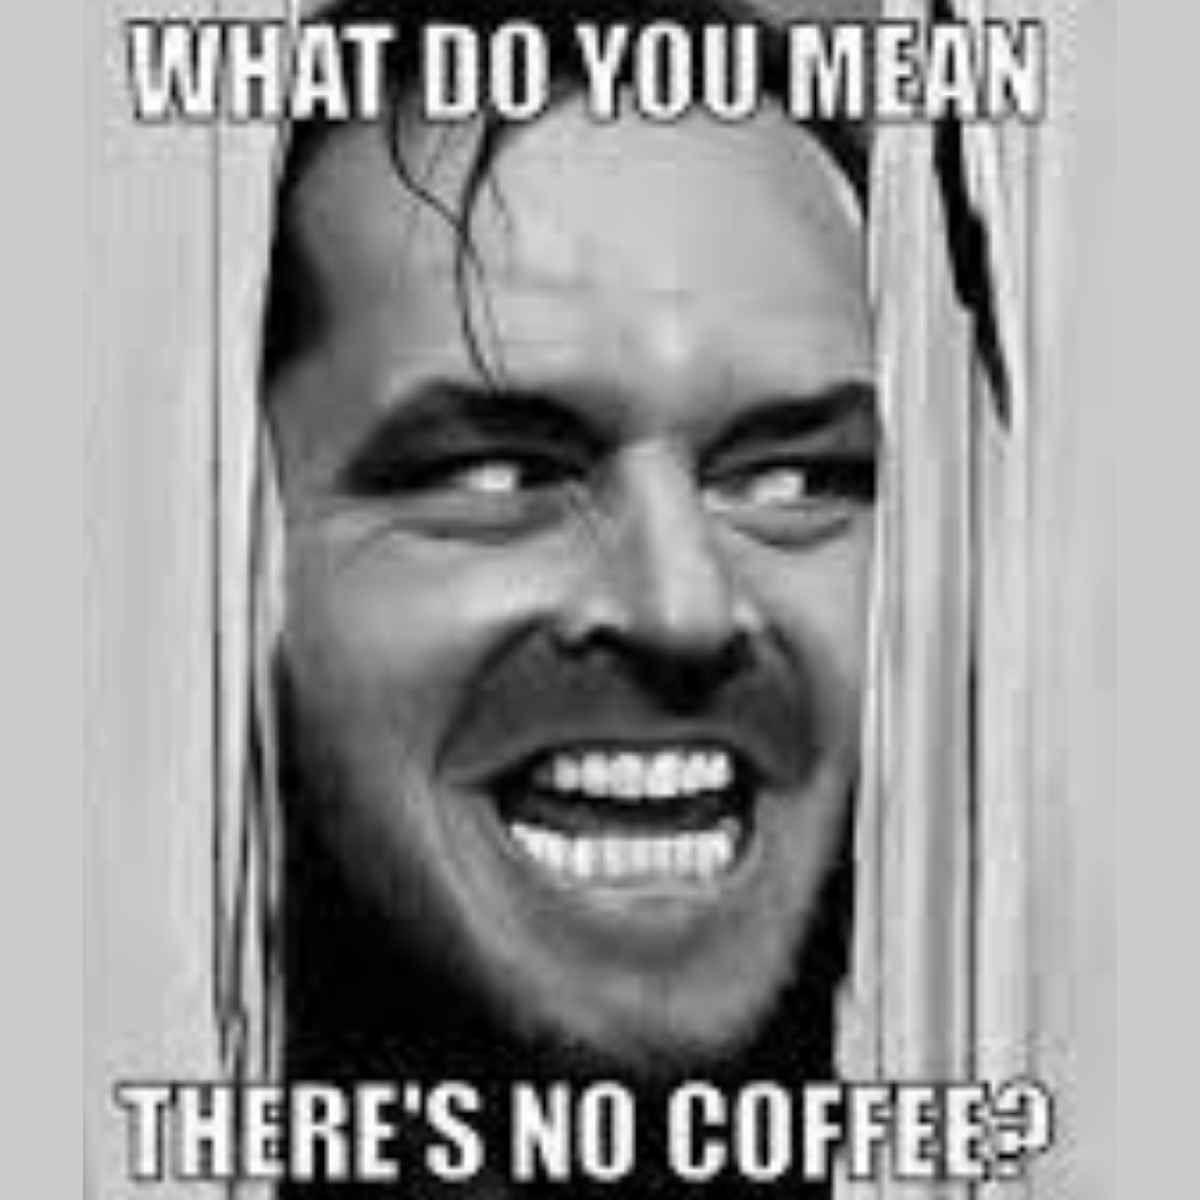 what do you mean there is no coffee meme funny